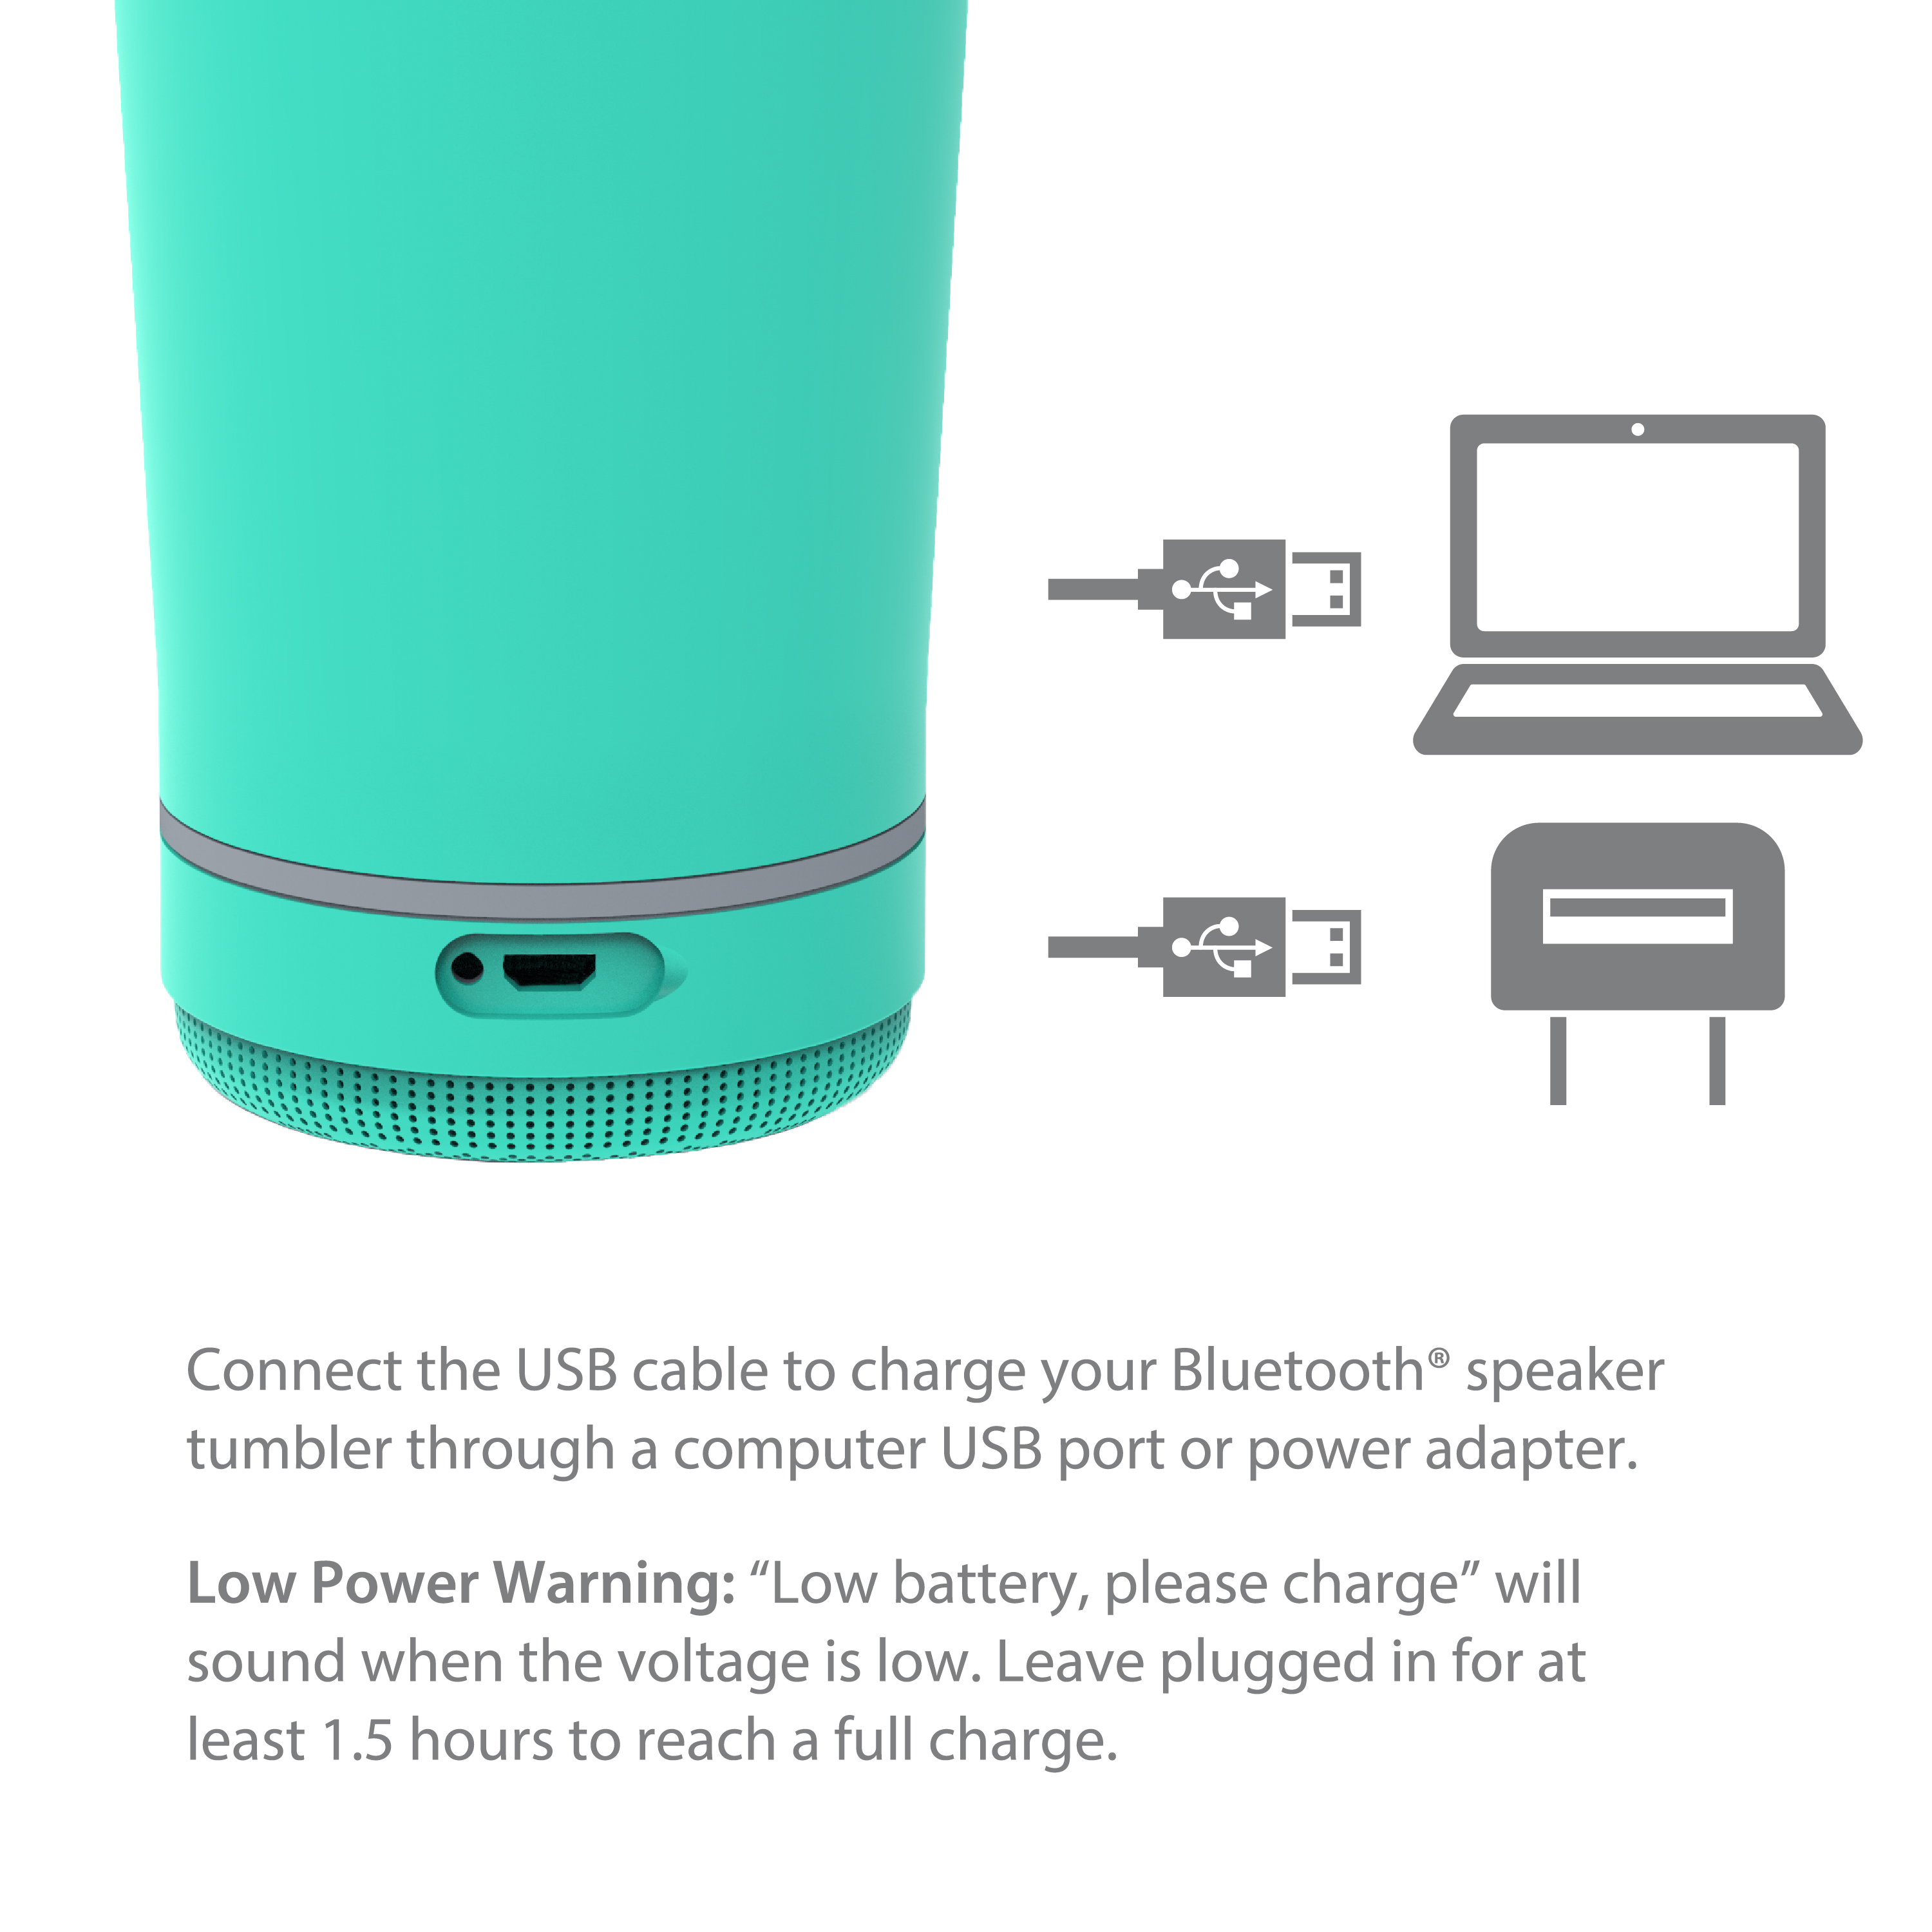 Zak Play 18 ounce Stainless Steel Tumbler with Bluetooth Speaker, Teal slideshow image 4